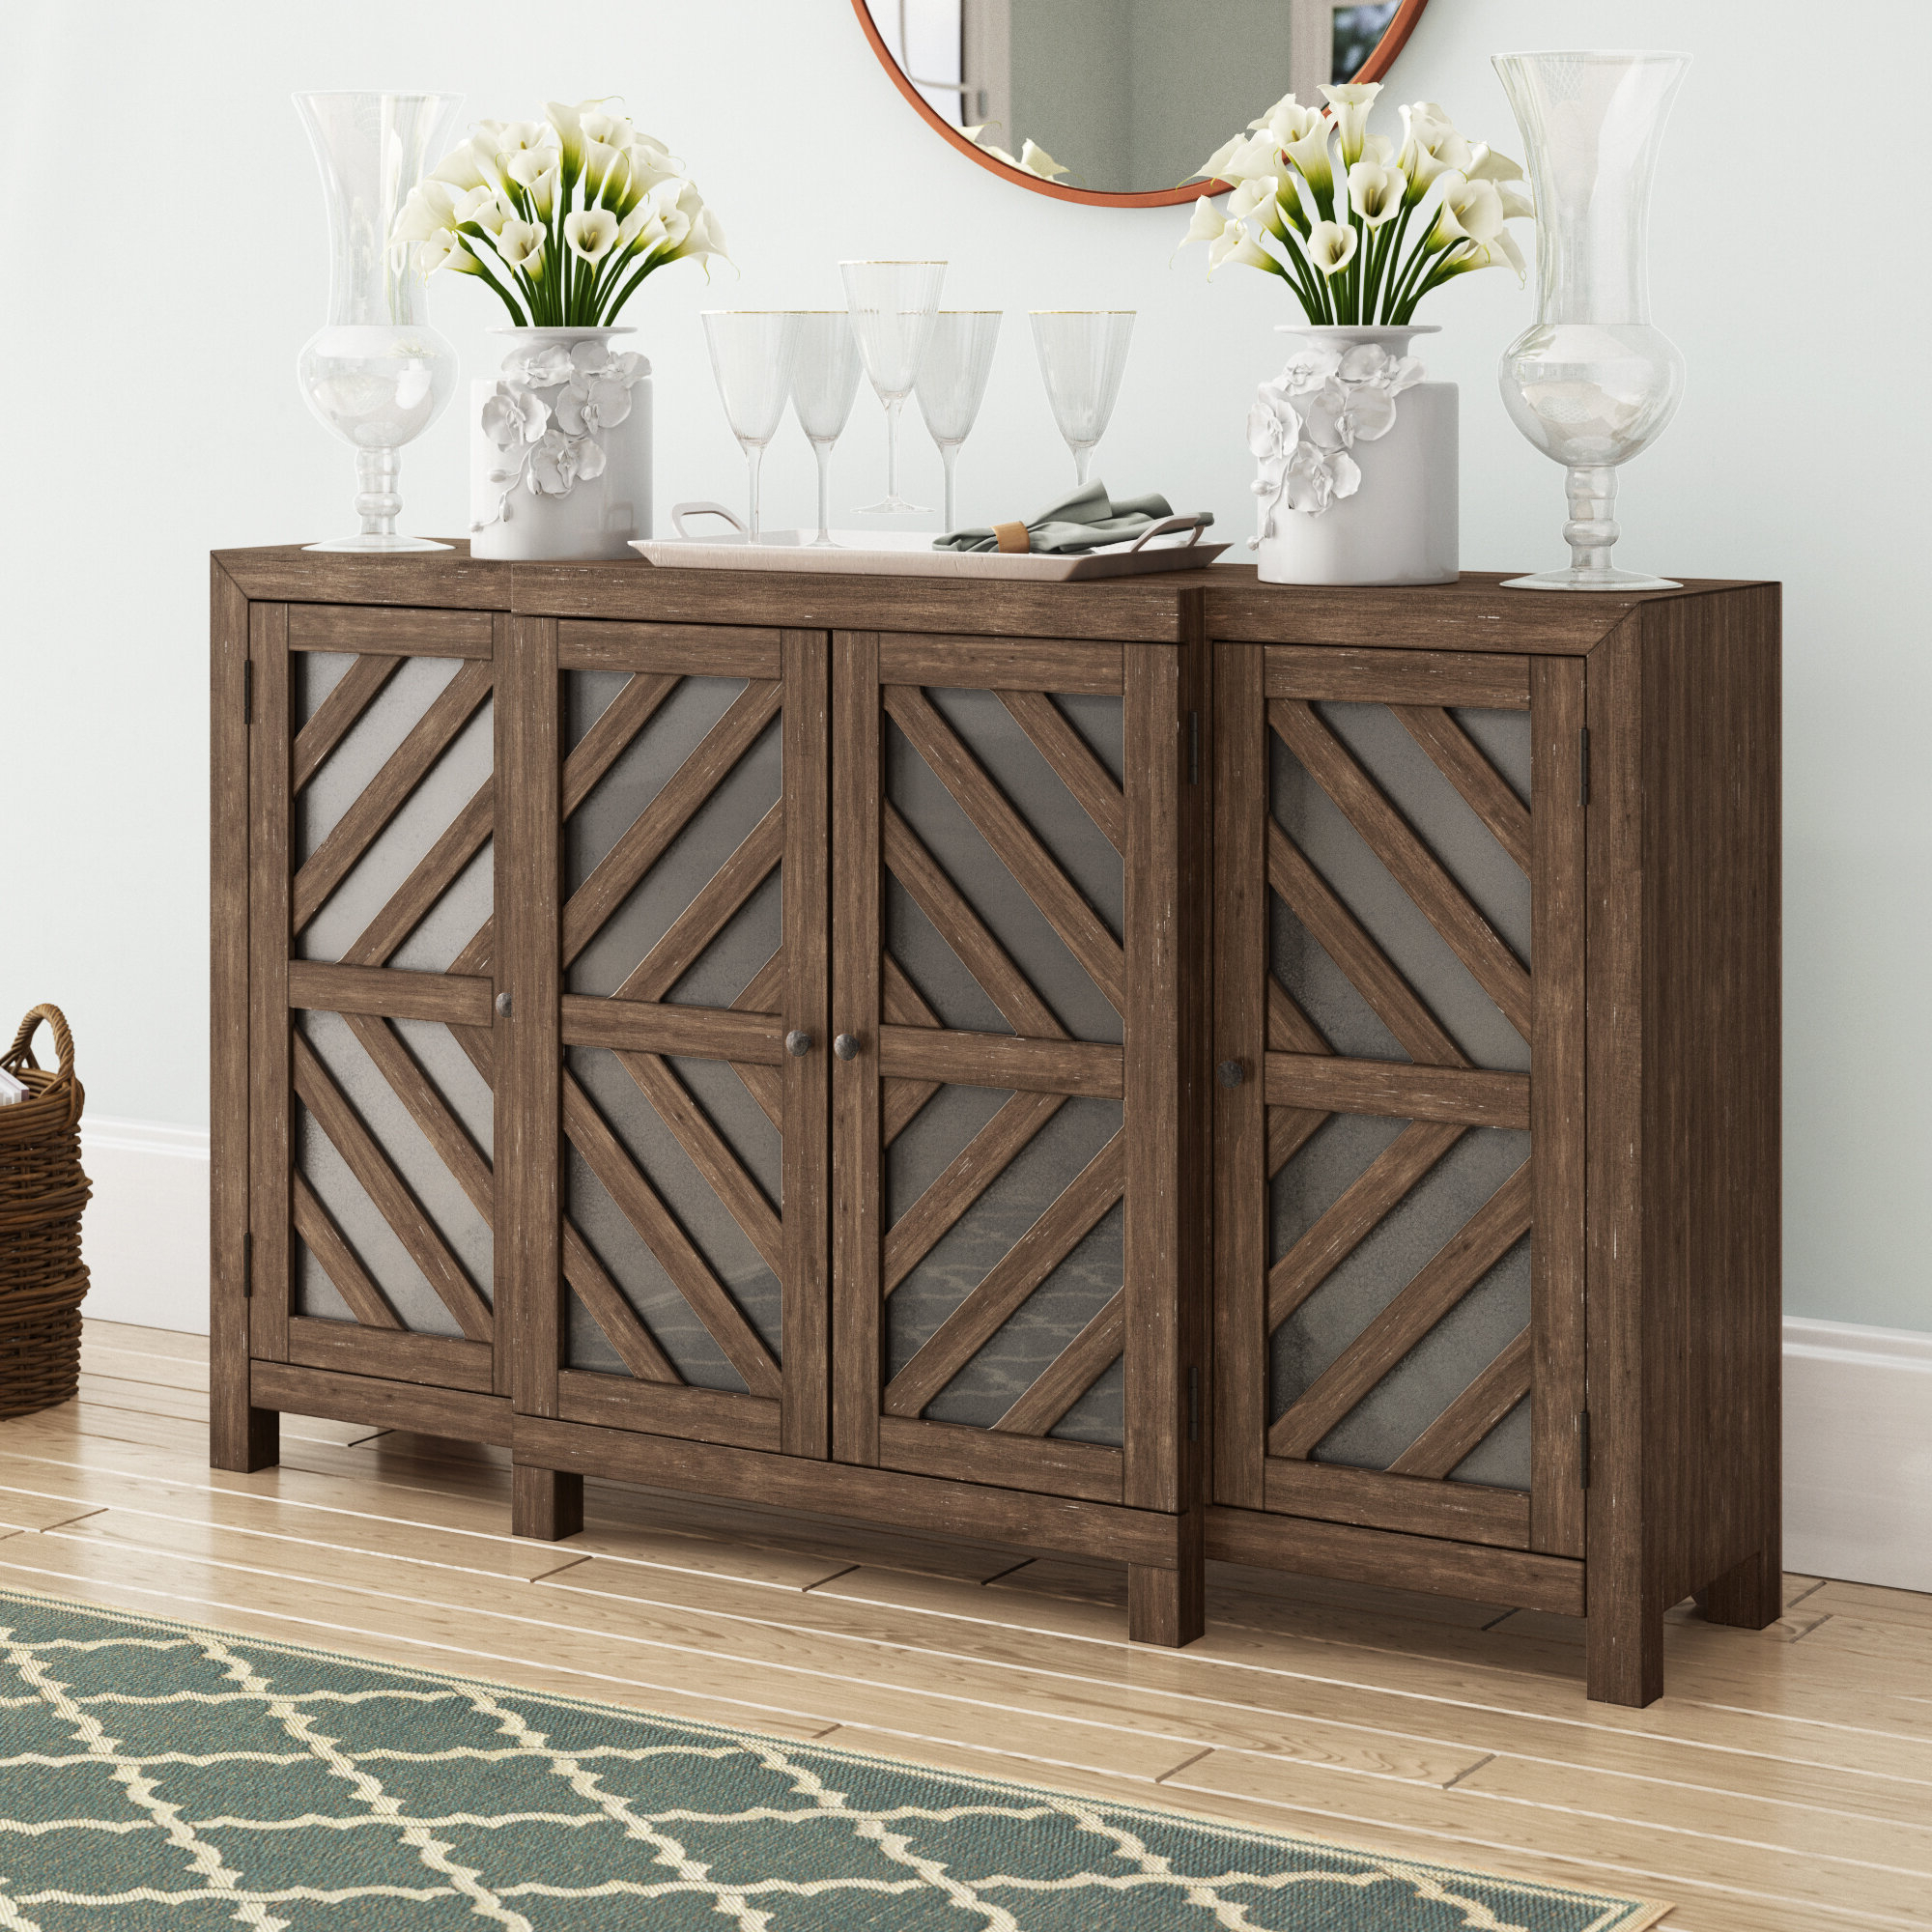 2020 72 Inch Credenza (View 2 of 20)